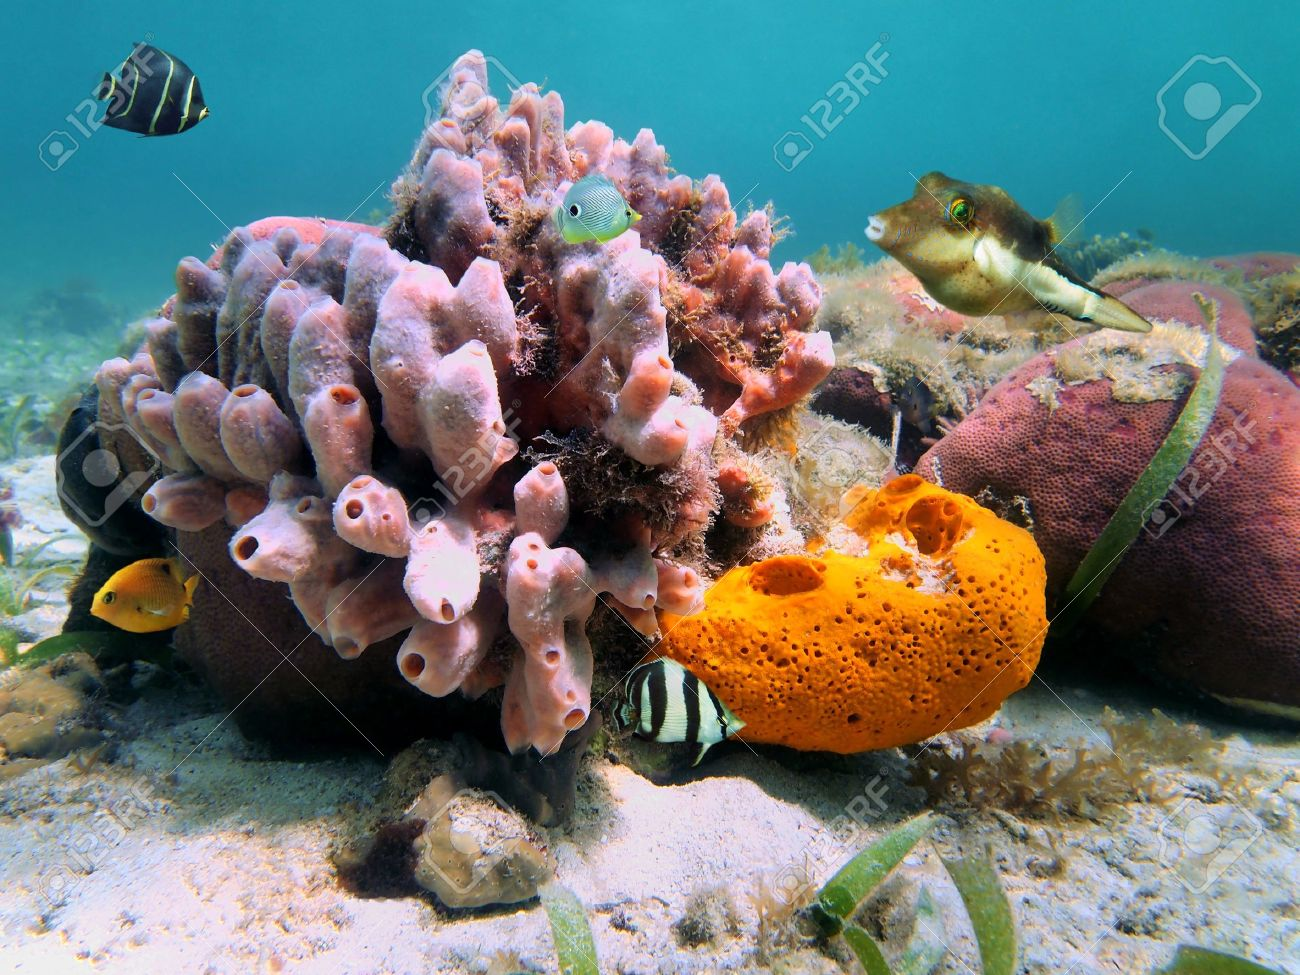 Colorful tropical fish and sea sponges in a Caribbean coral reef Stock Photo - 11535197